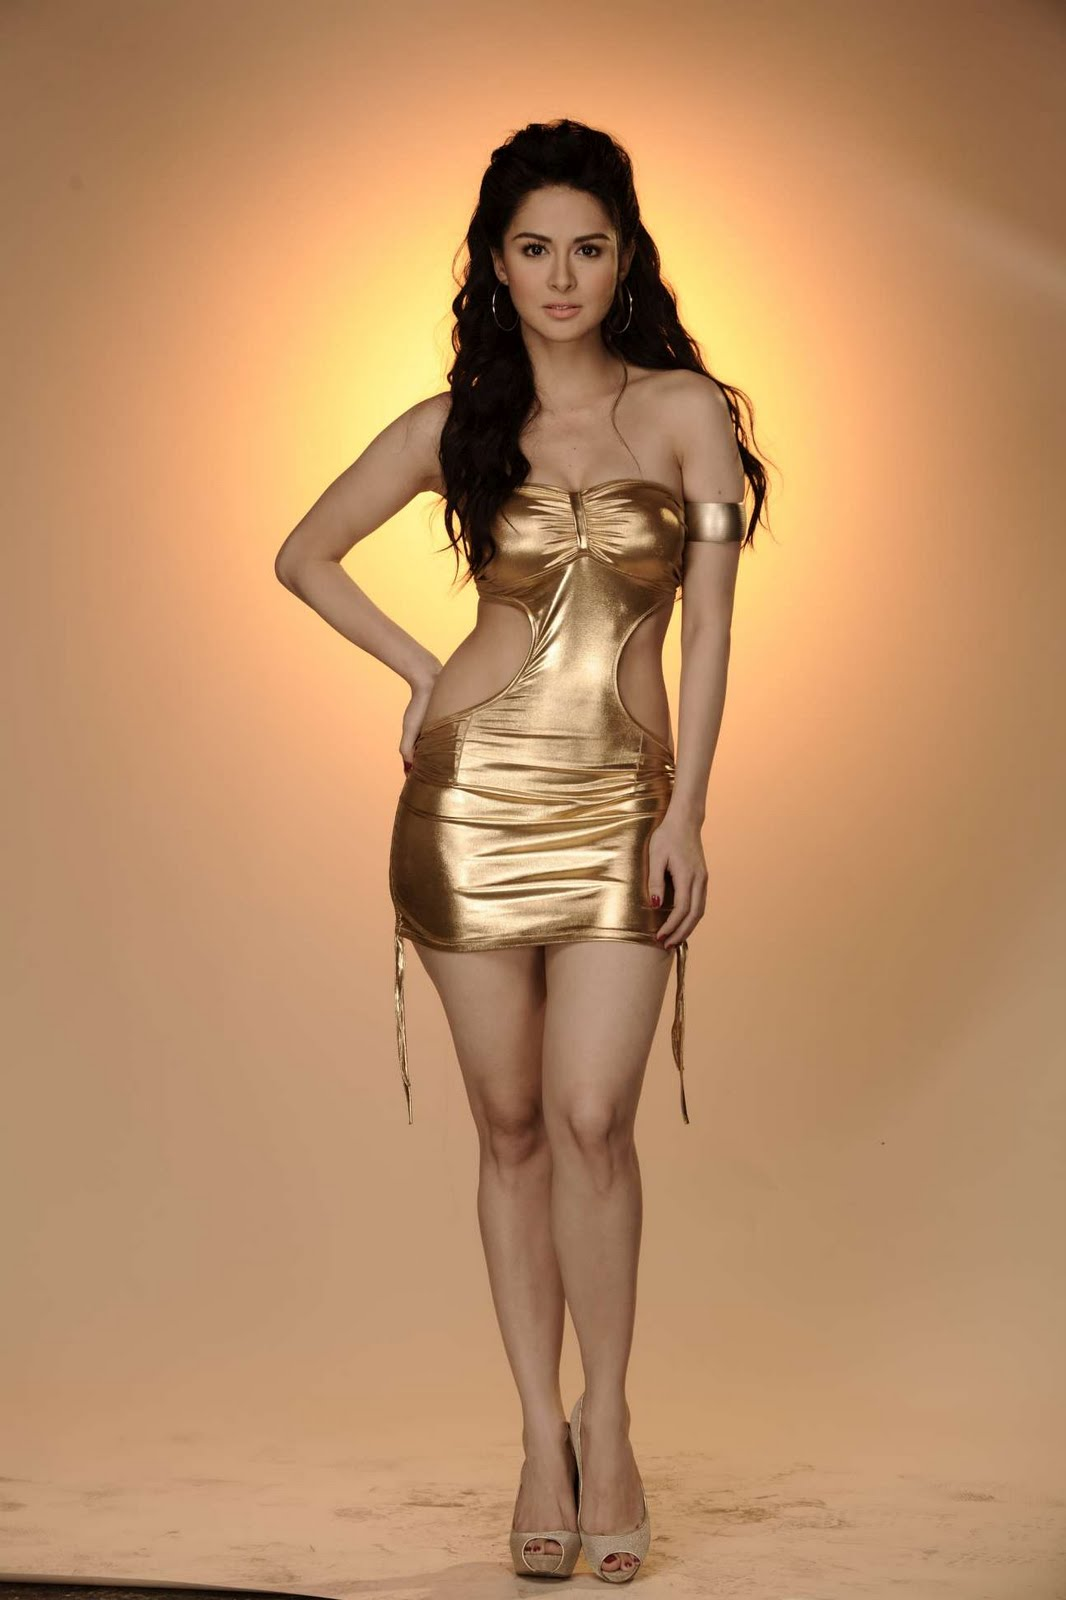 philippines models gallery sexy photos of marian rivera